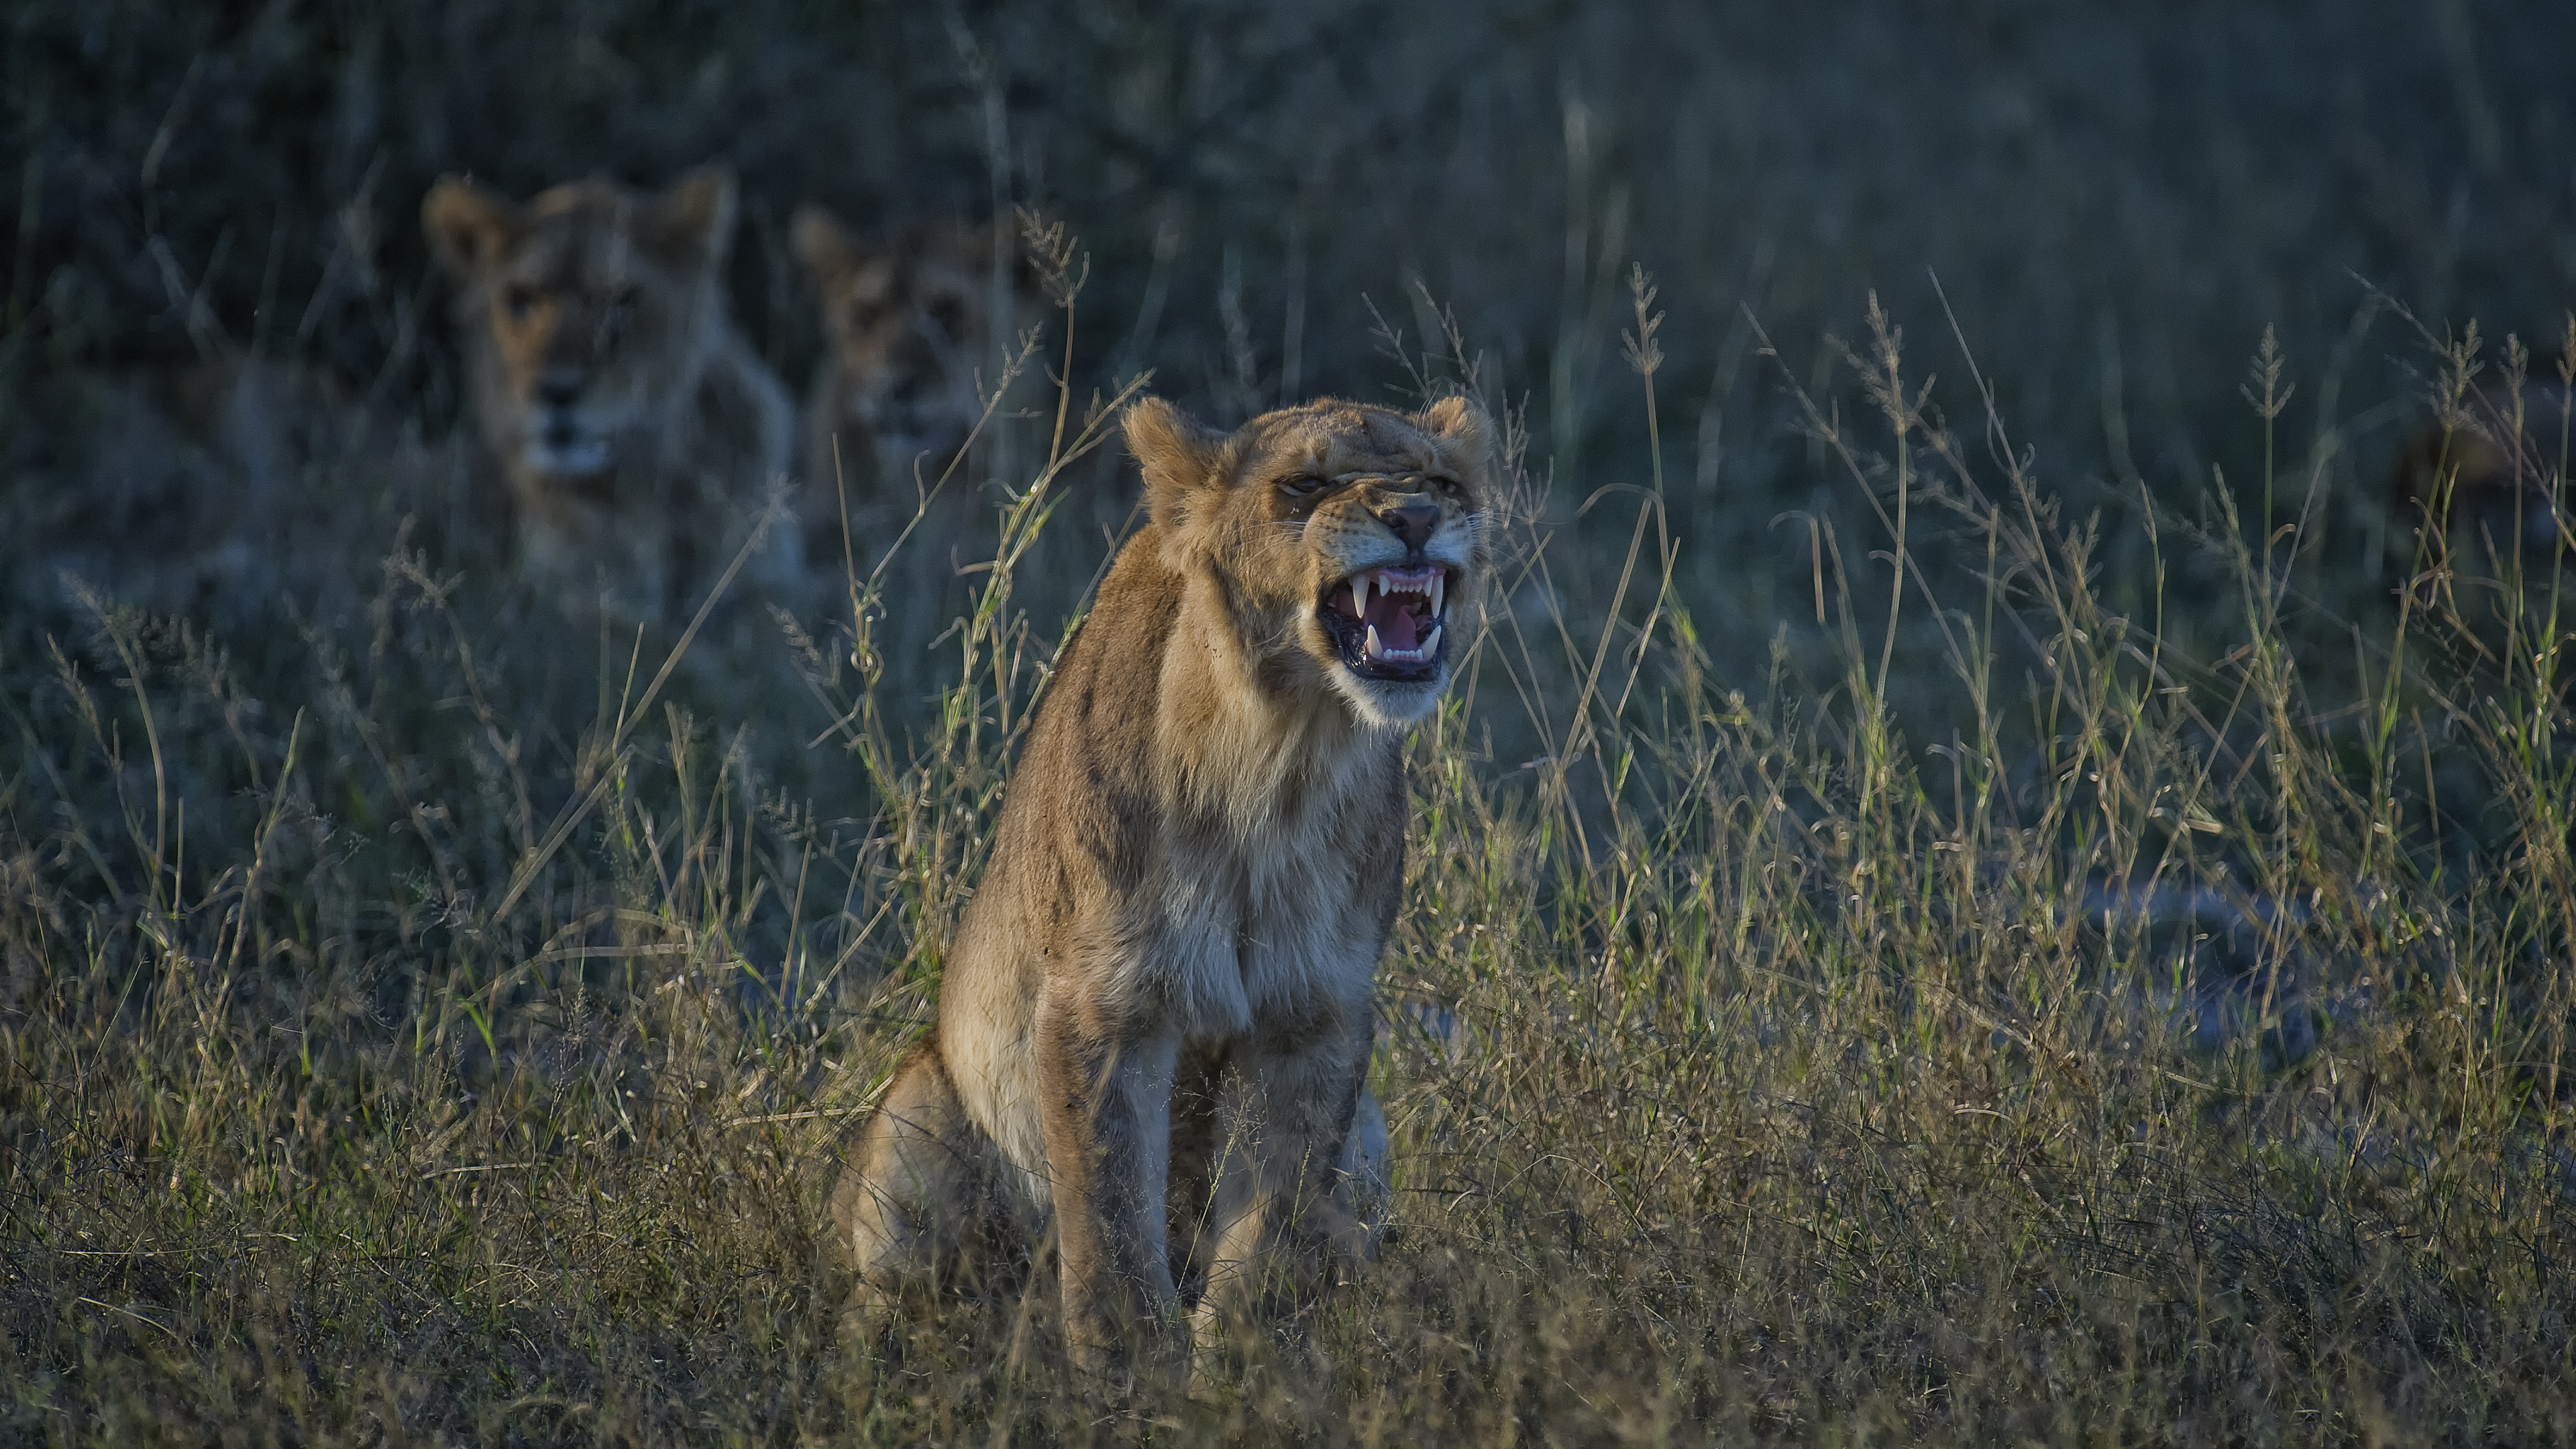 Lion Teeth in Grass